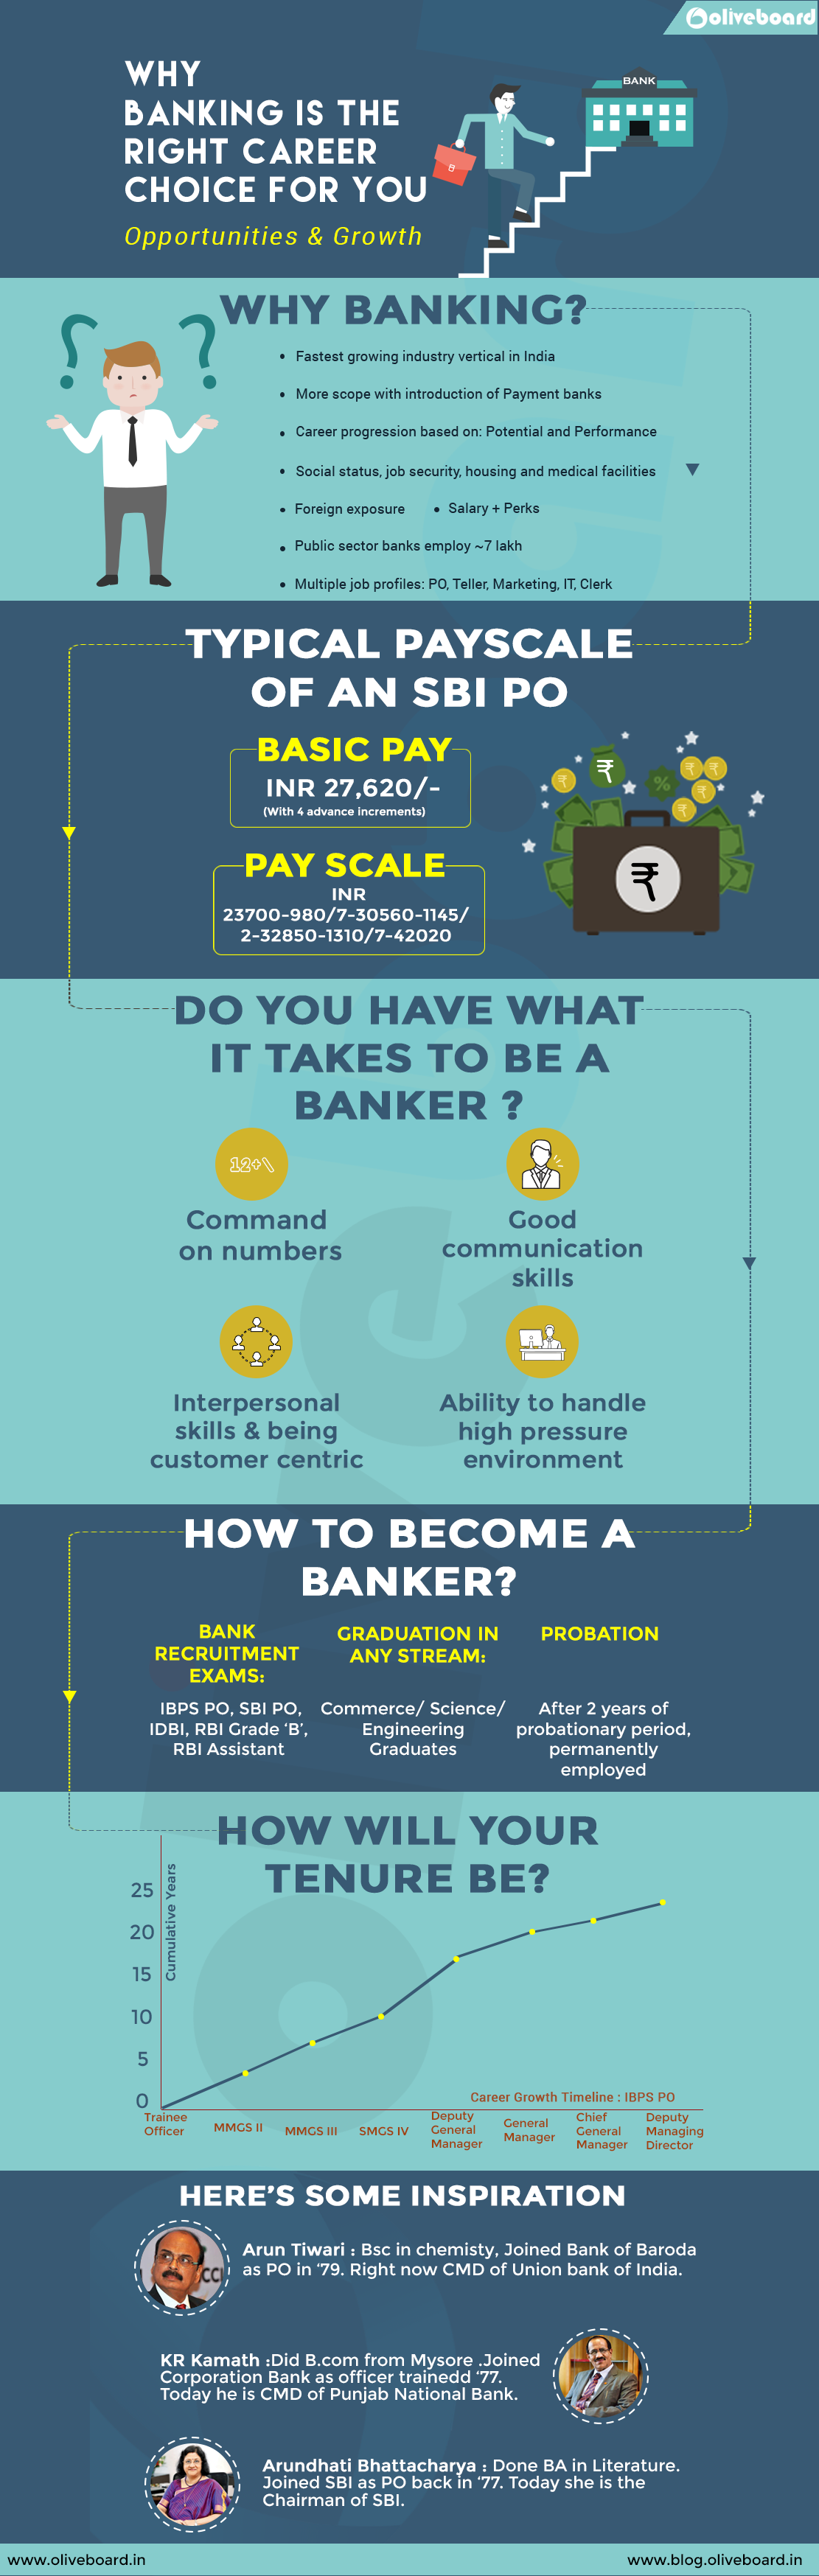 why banking is the right career choice for you infographic career in banking inofgraphic